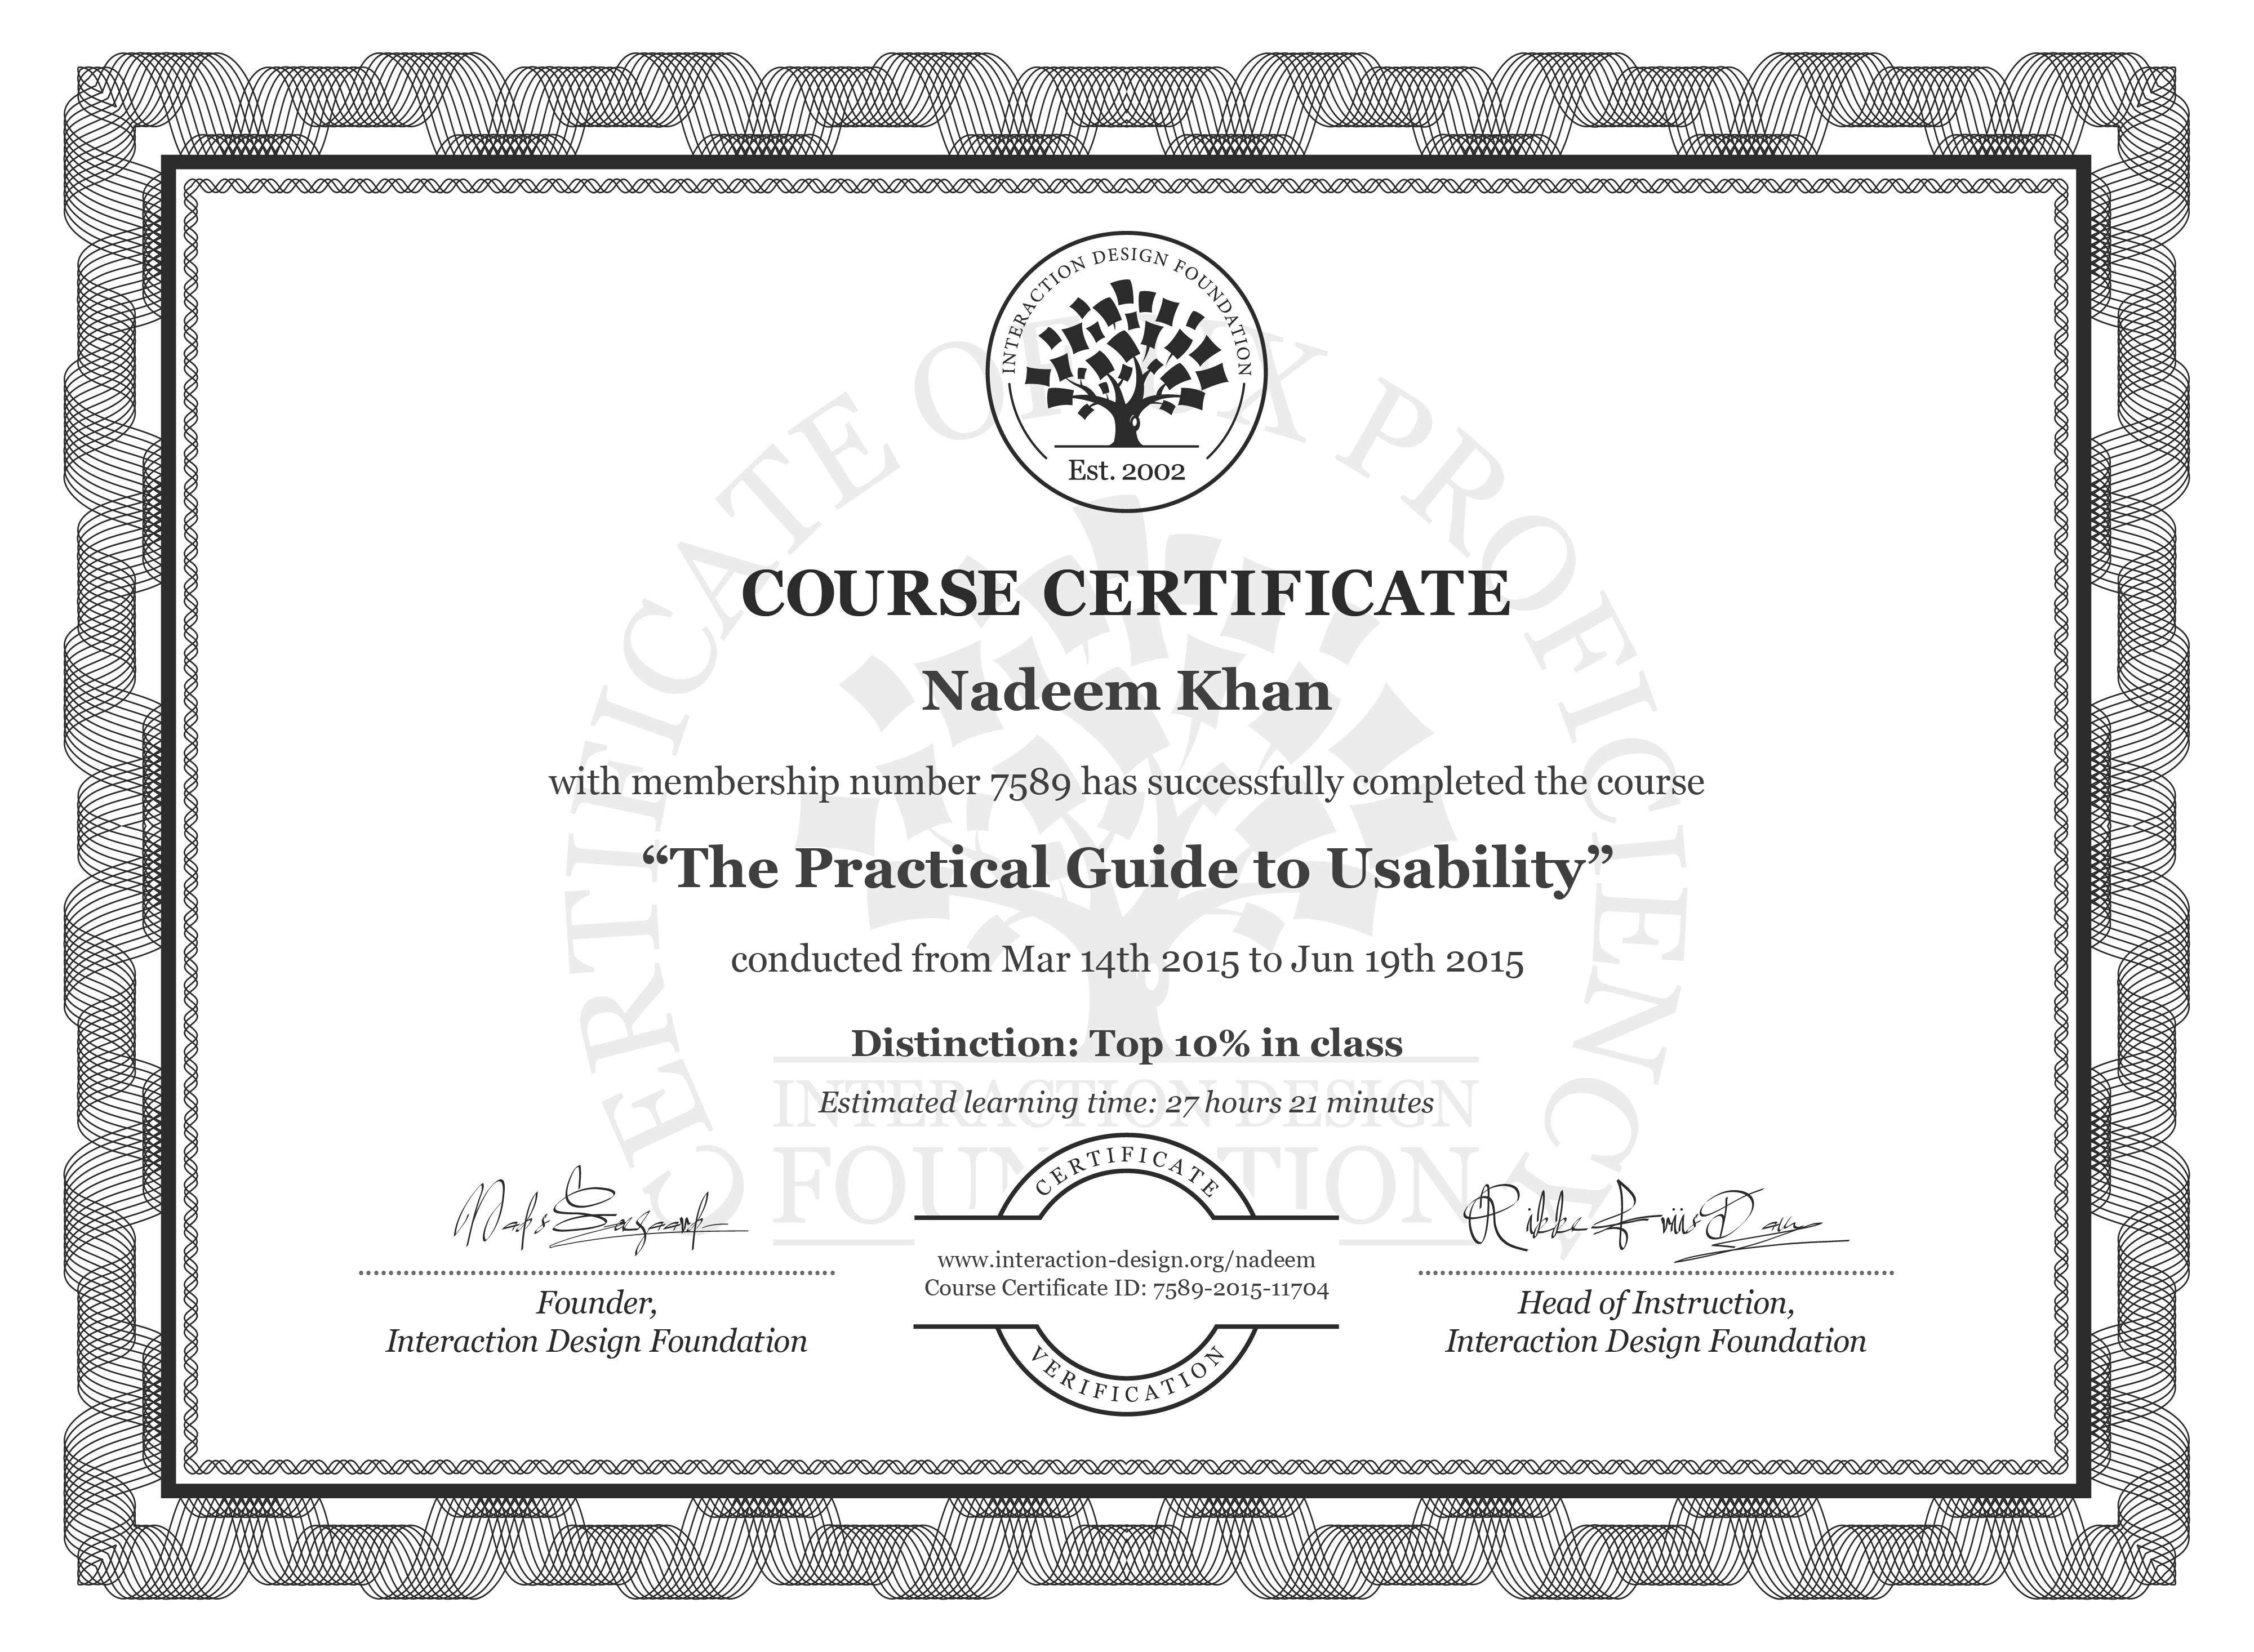 Nadeem Khan's Course Certificate: The Practical Guide to Usability